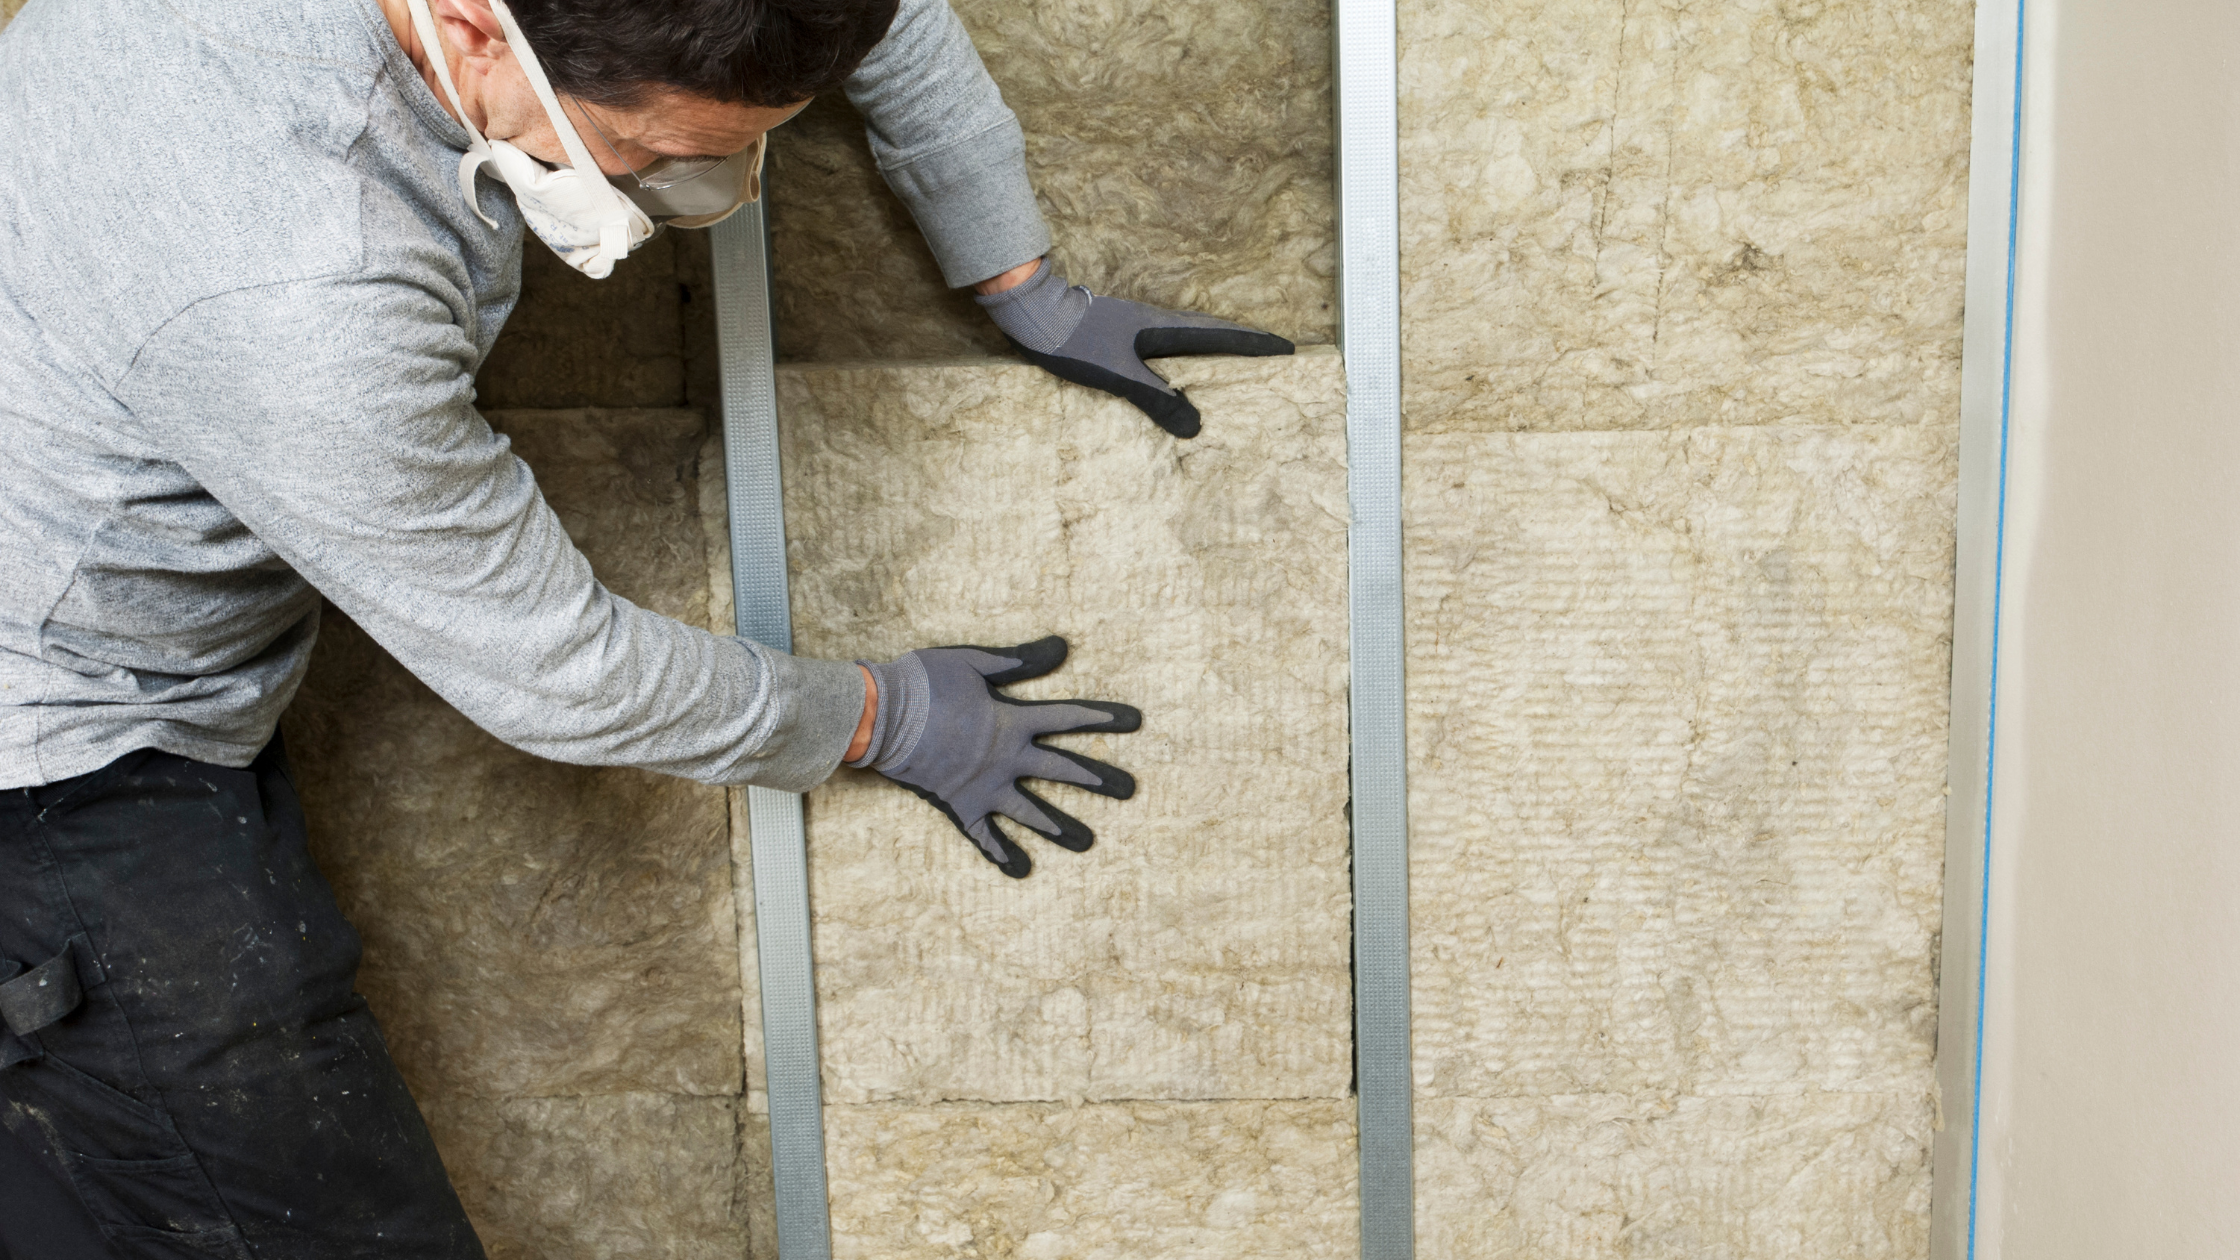 Man insulating a wall within a home.